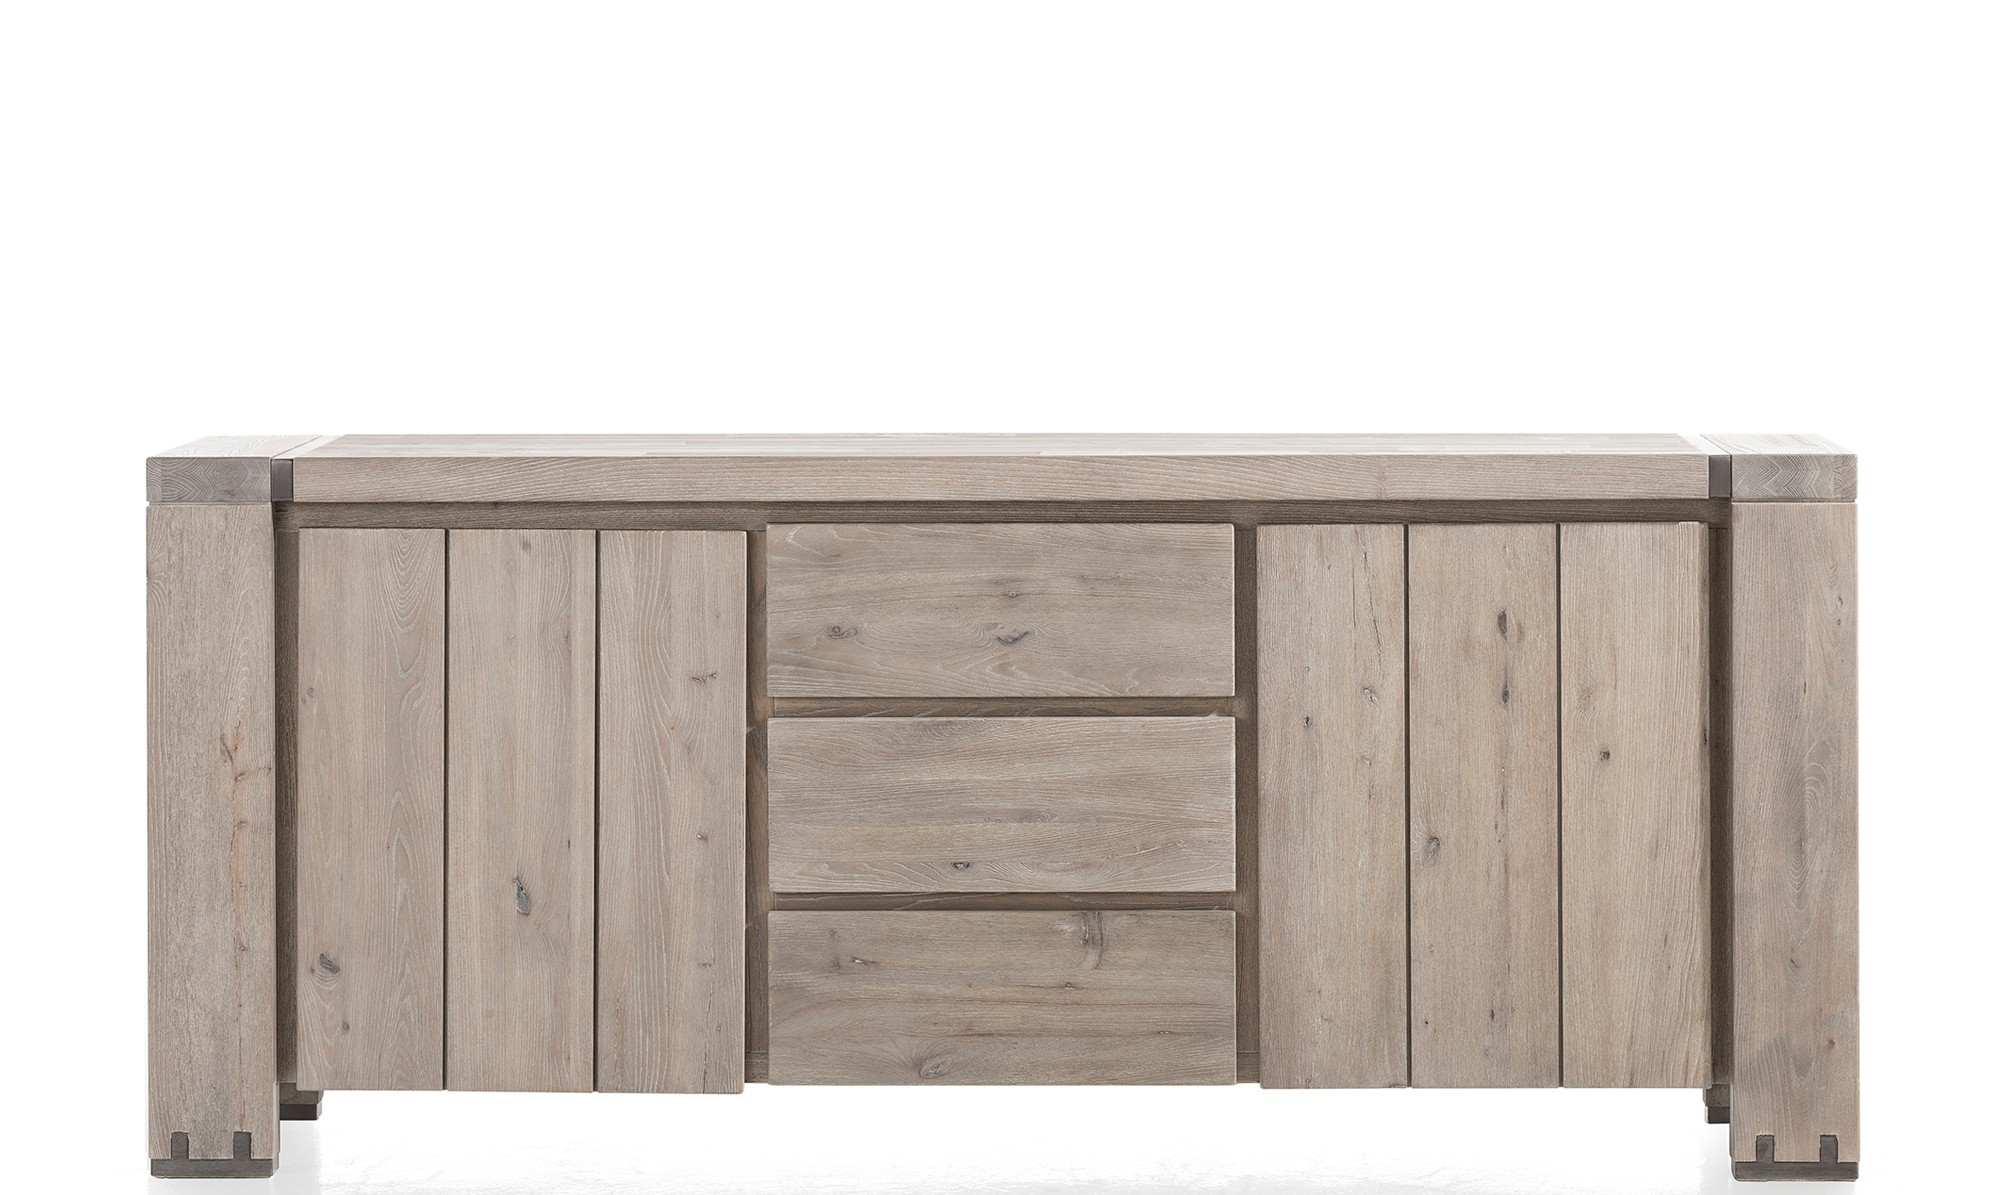 Sideboards - Modern, Oak & Pine Sideboards - Fishpools regarding Antique Walnut Finish 2-Door/4-Drawer Sideboards (Image 25 of 30)